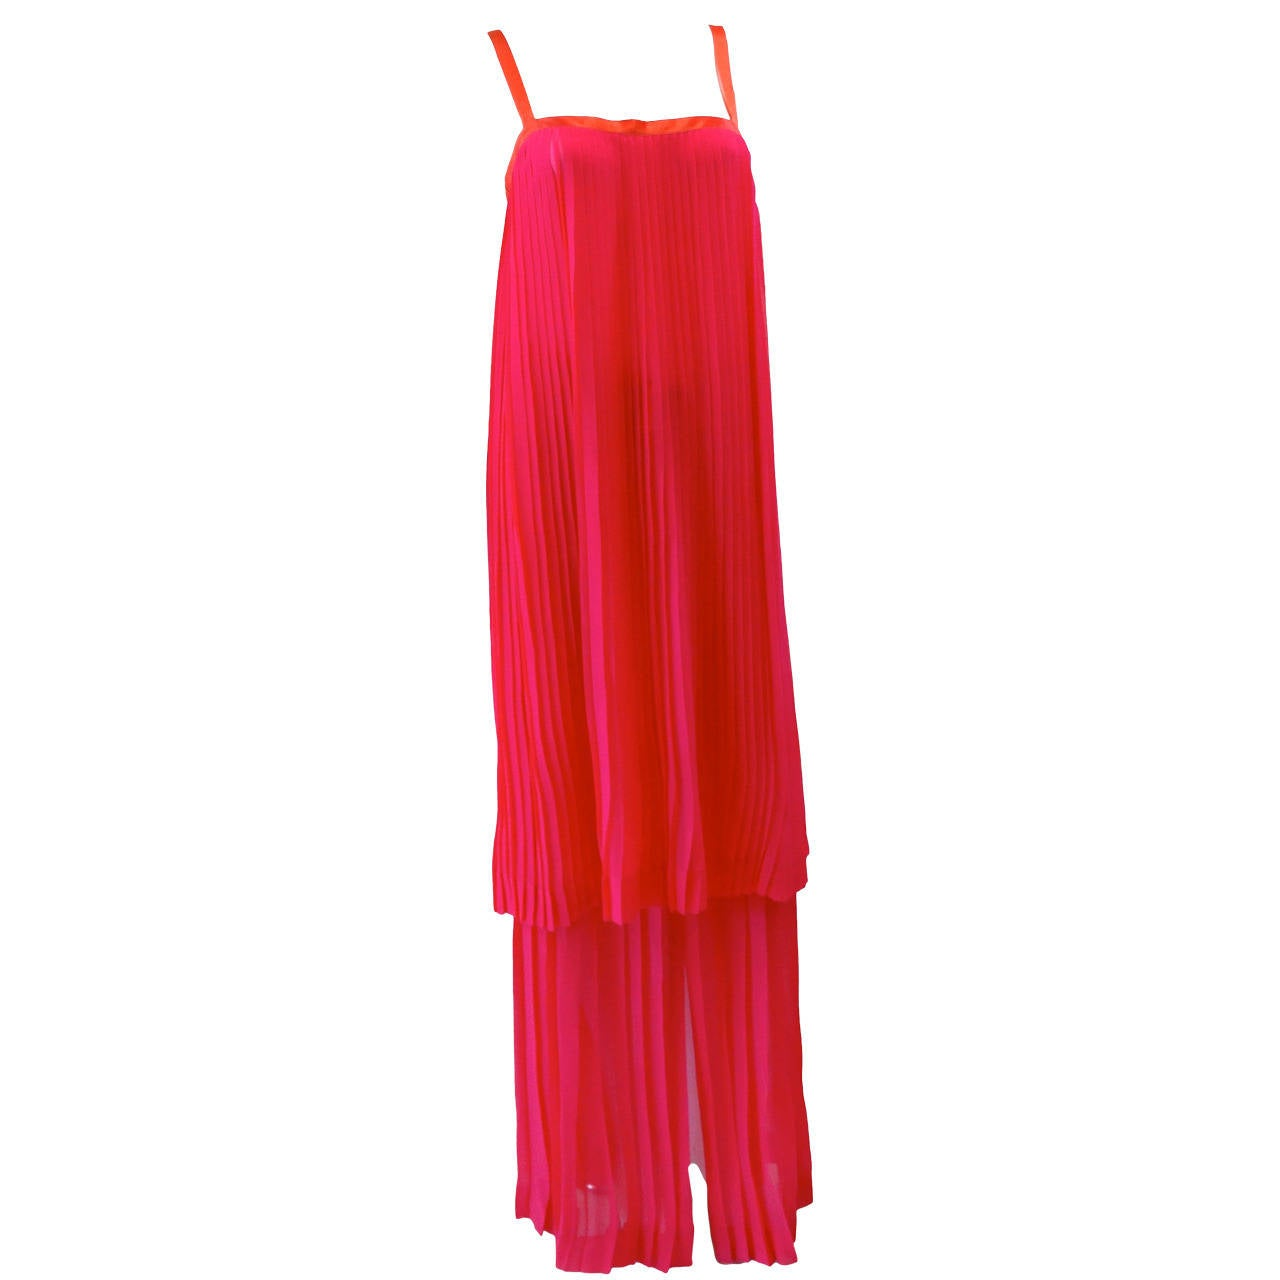 Yves Saint Laurent Electric Pink Accordion Silk Dress Skirt Set, 1980s